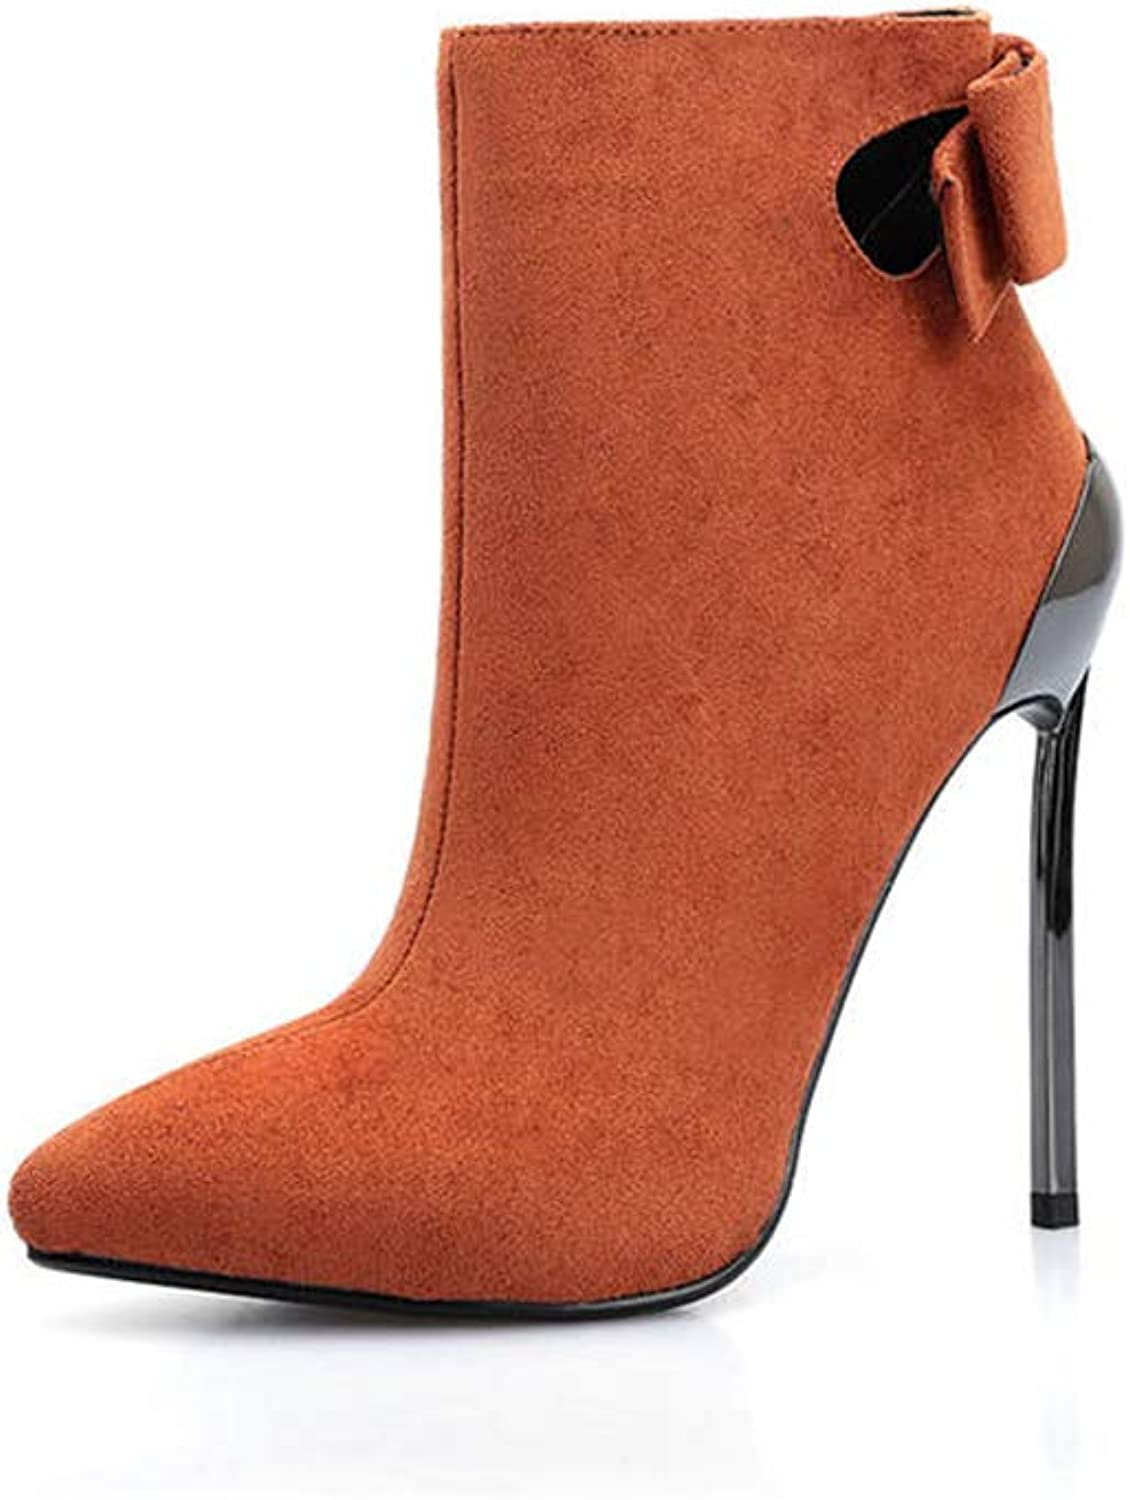 T-JULY Suede Leather Ankle Boots Women Pointed Toe Autumn Winter Boots Sexy Super Heel Slip on Dress Prom shoes